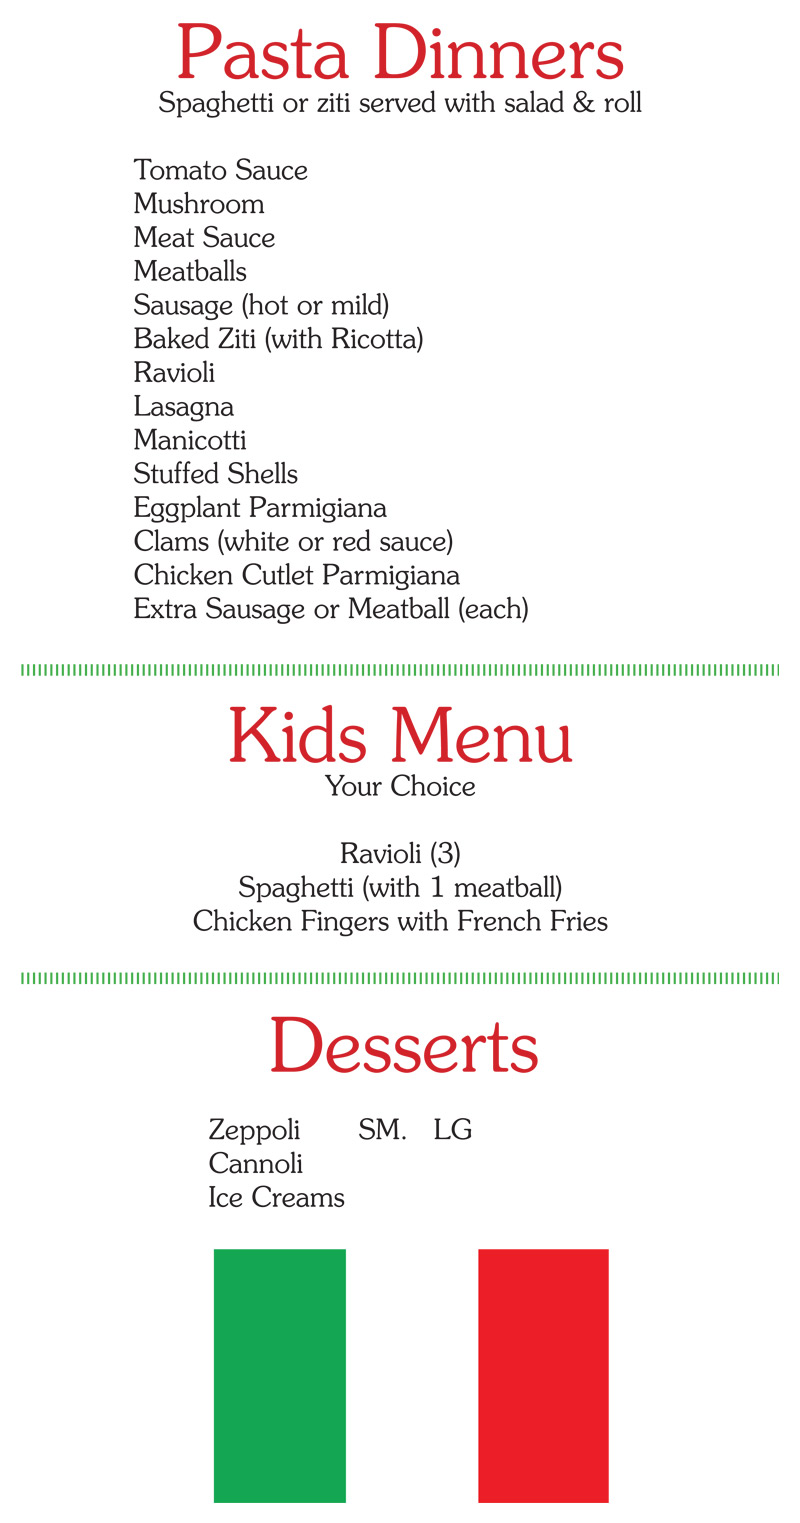 sal's pizza mantua nj menu page 4